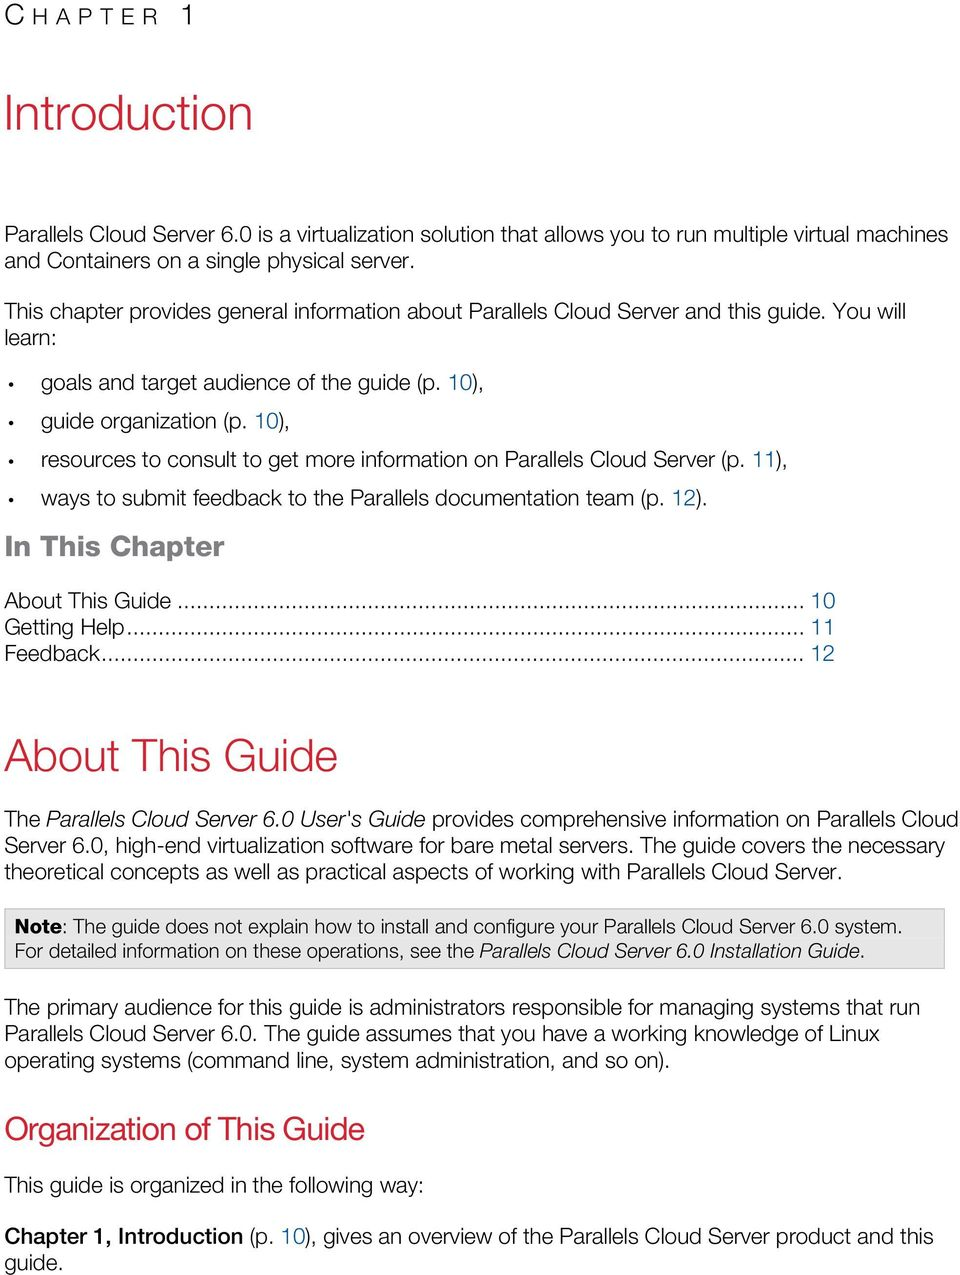 10), resources to consult to get more information on Parallels Cloud Server (p. 11), ways to submit feedback to the Parallels documentation team (p. 12). In This Chapter About This Guide.